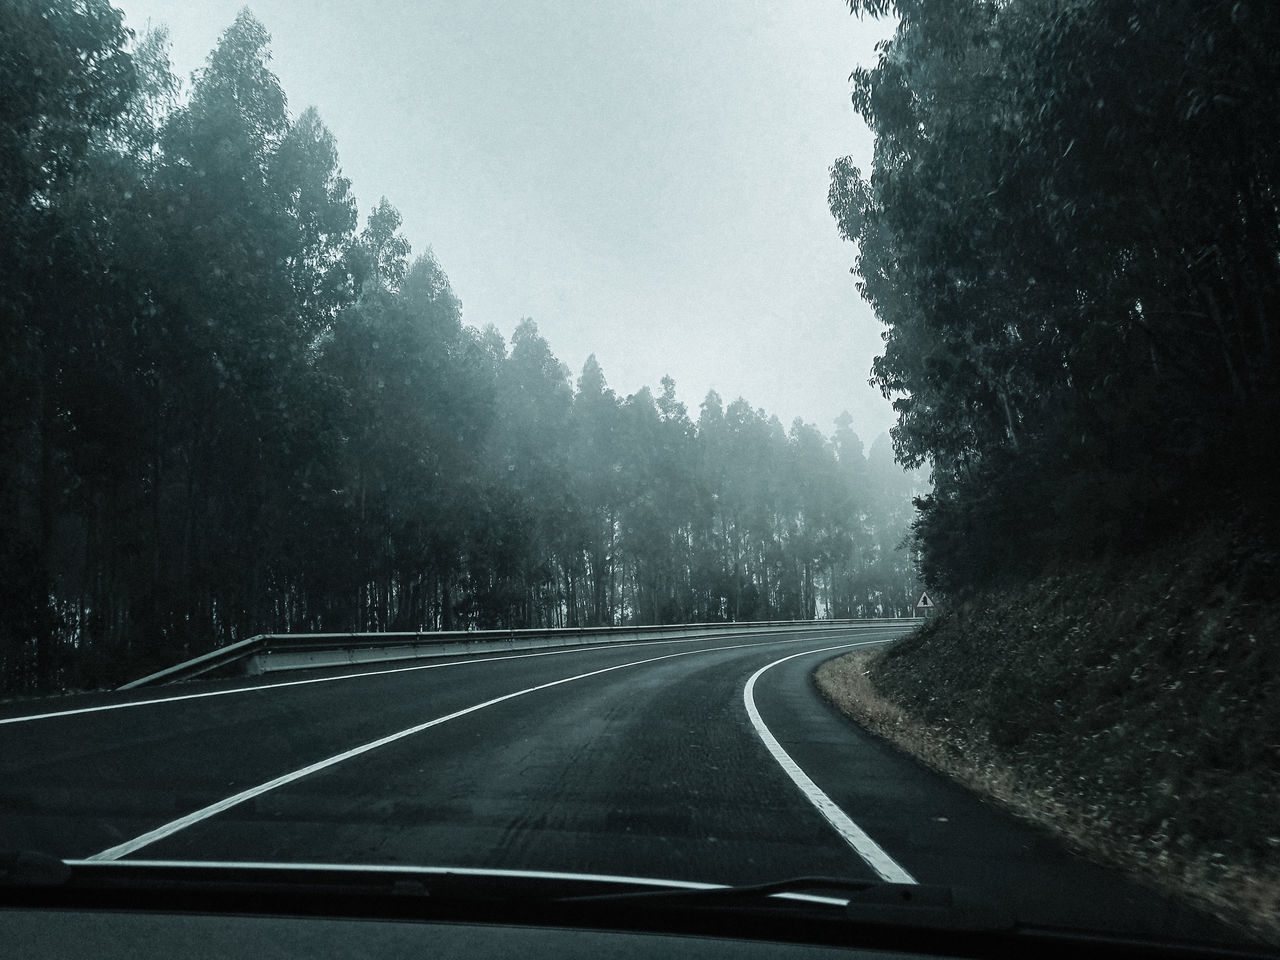 the way forward, tree, road, transportation, nature, windshield, tranquil scene, day, no people, tranquility, beauty in nature, landscape, scenics, car point of view, fog, outdoors, sky